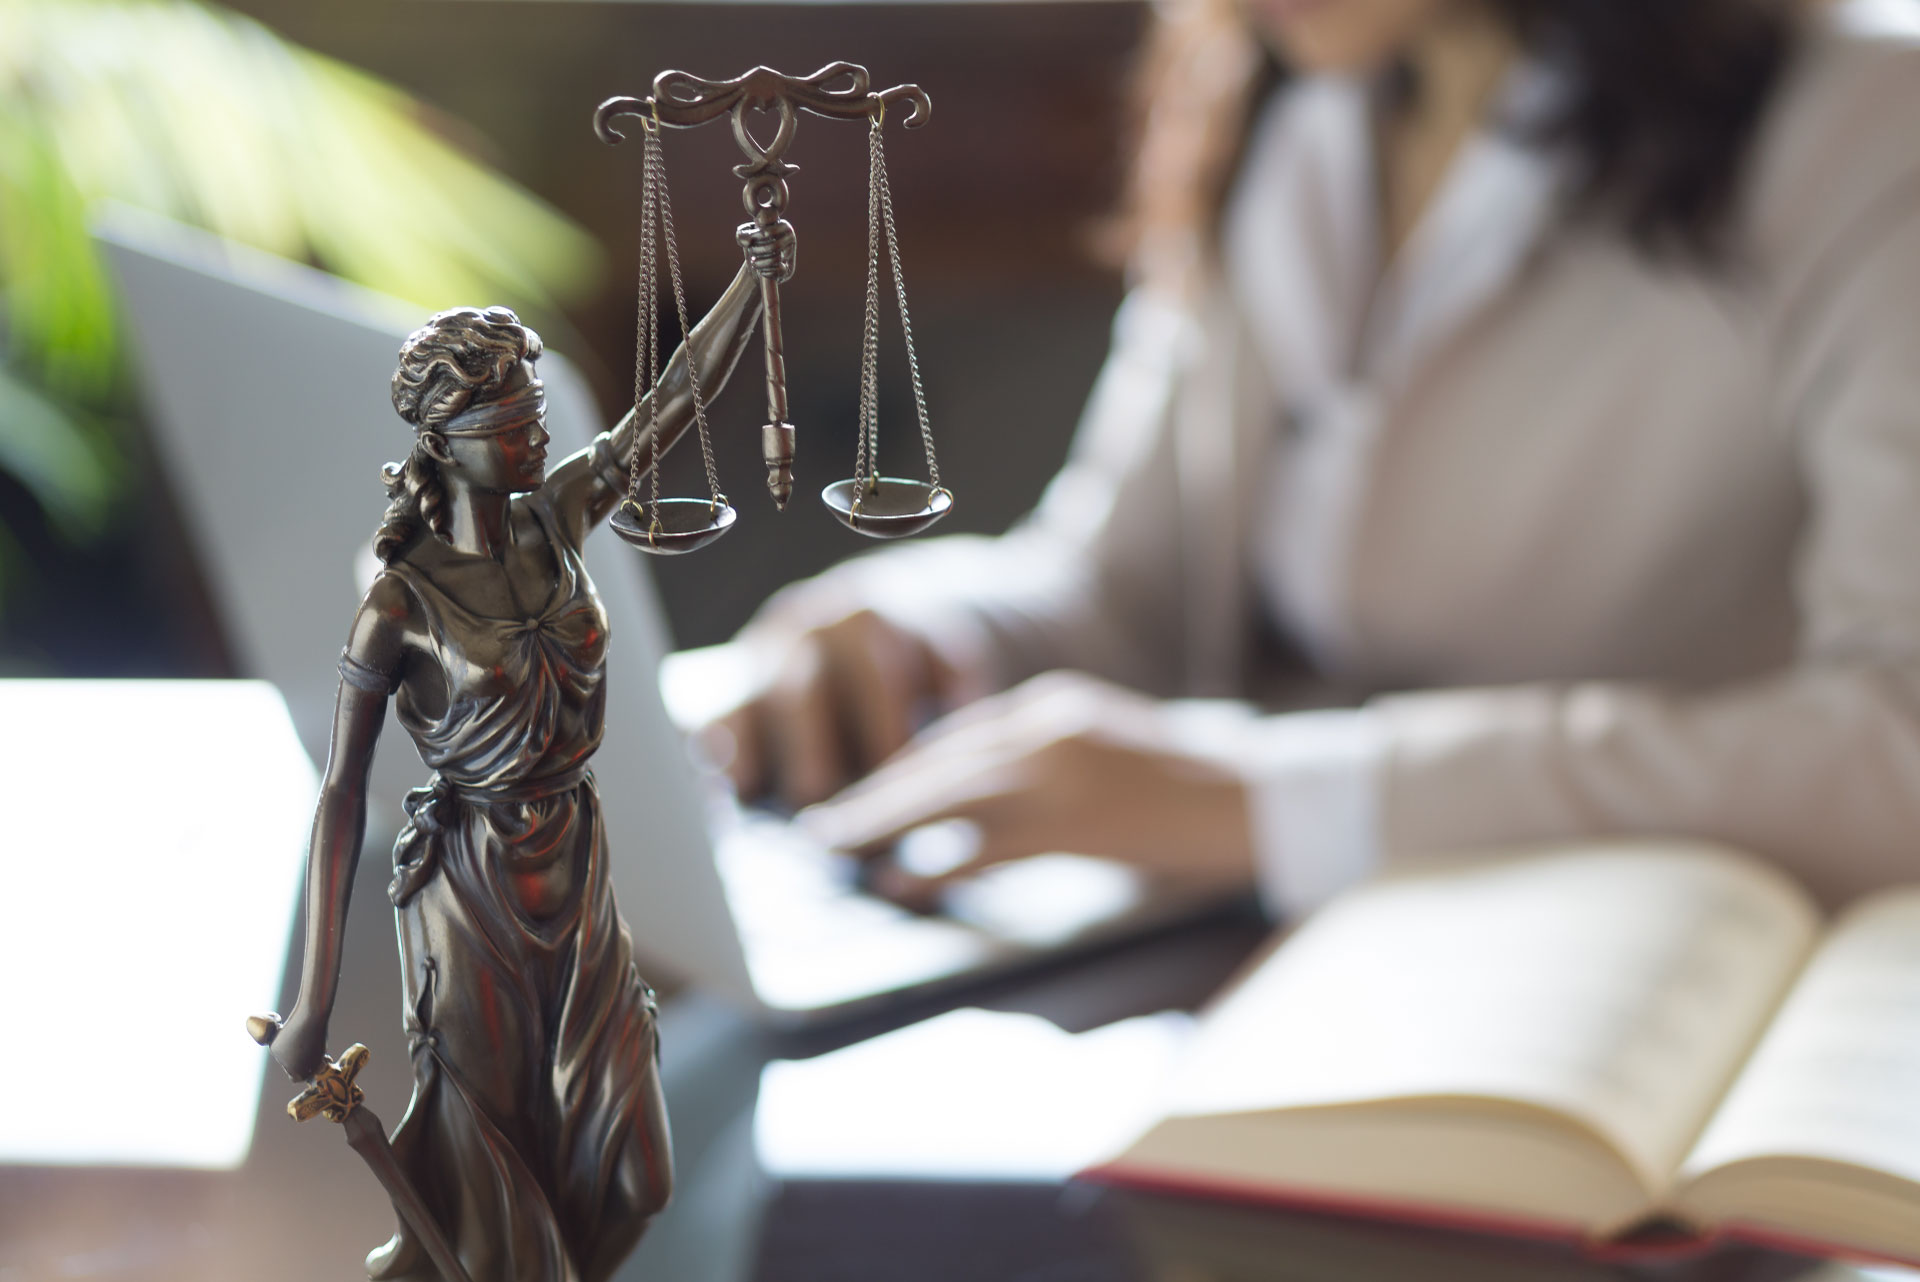 Image of a gavel and scales